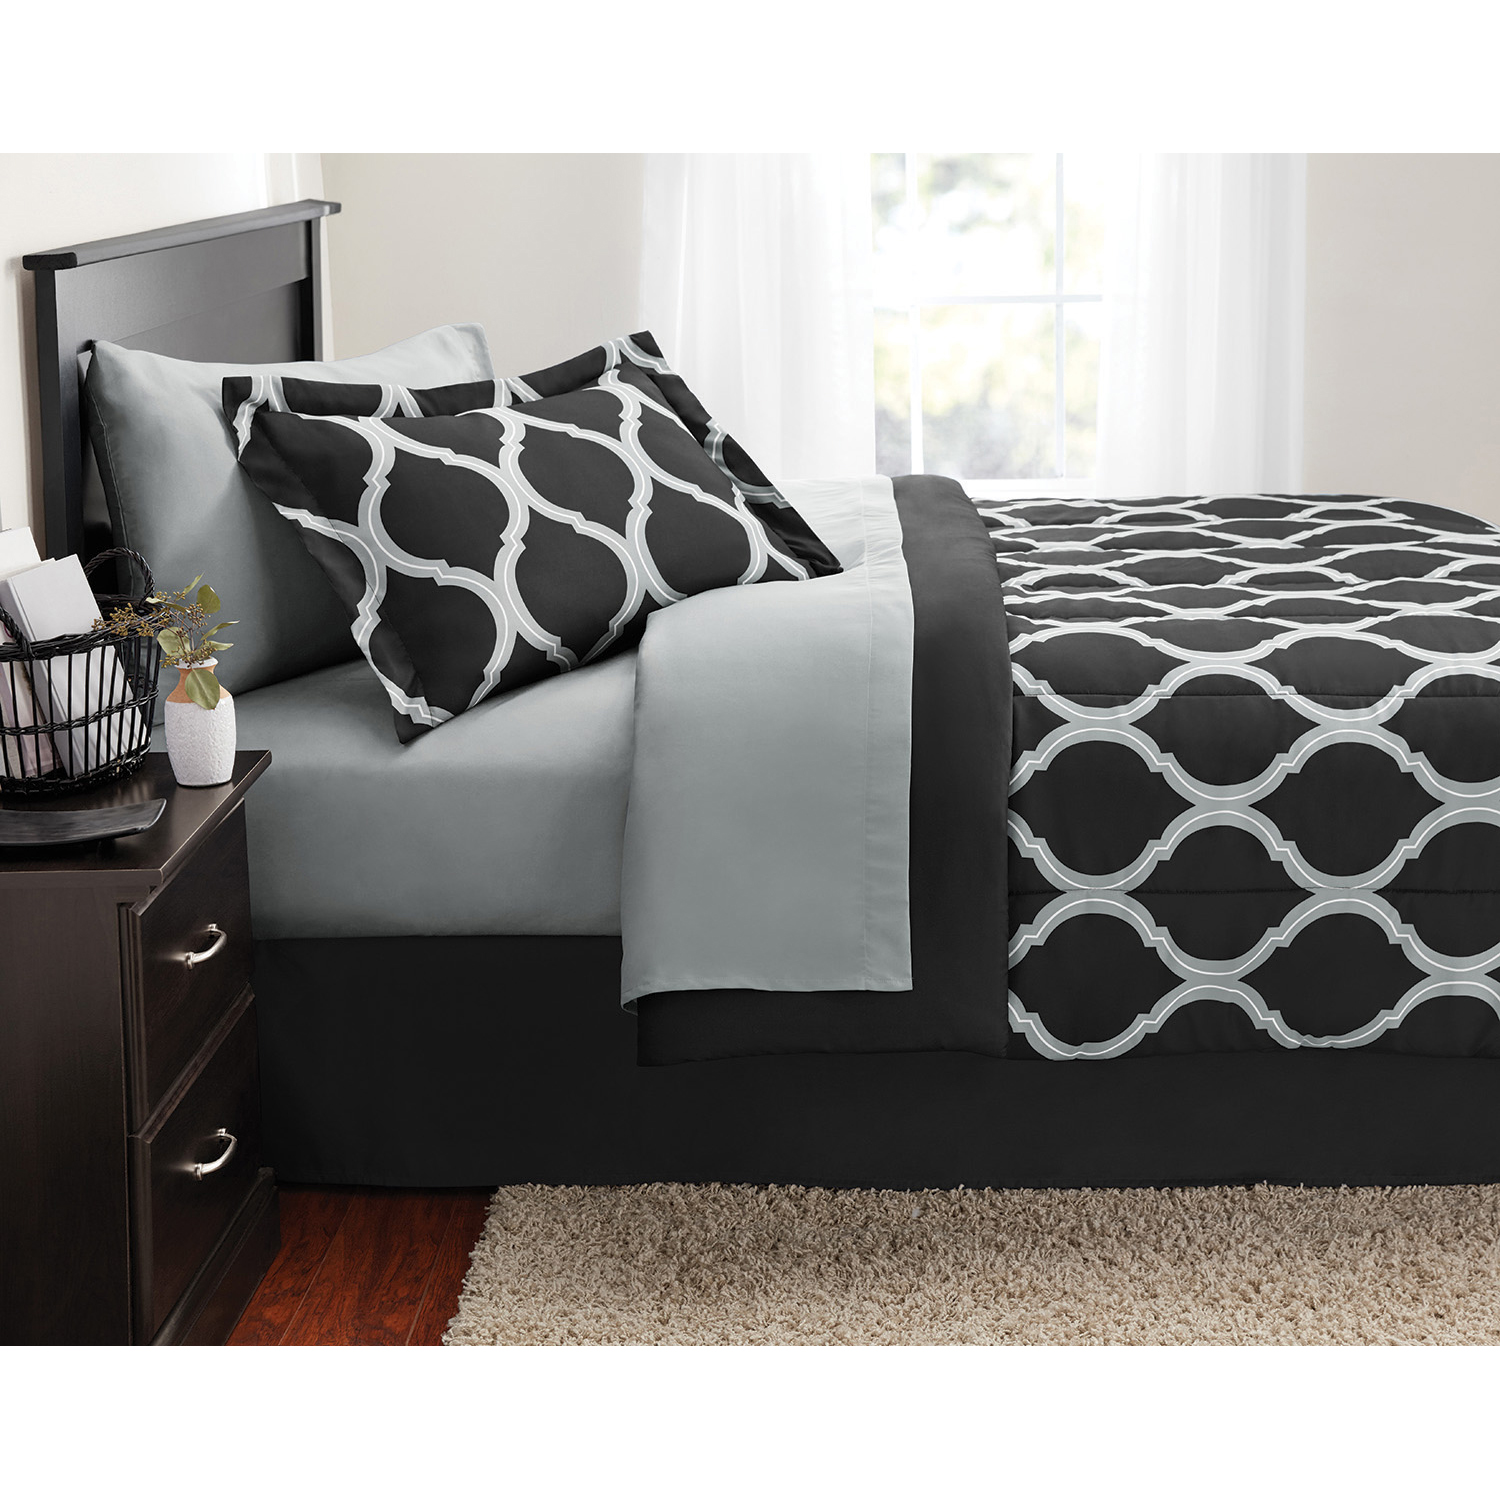 Mainstays Geometric Bed in a Bag Bedding Set by Beco industries